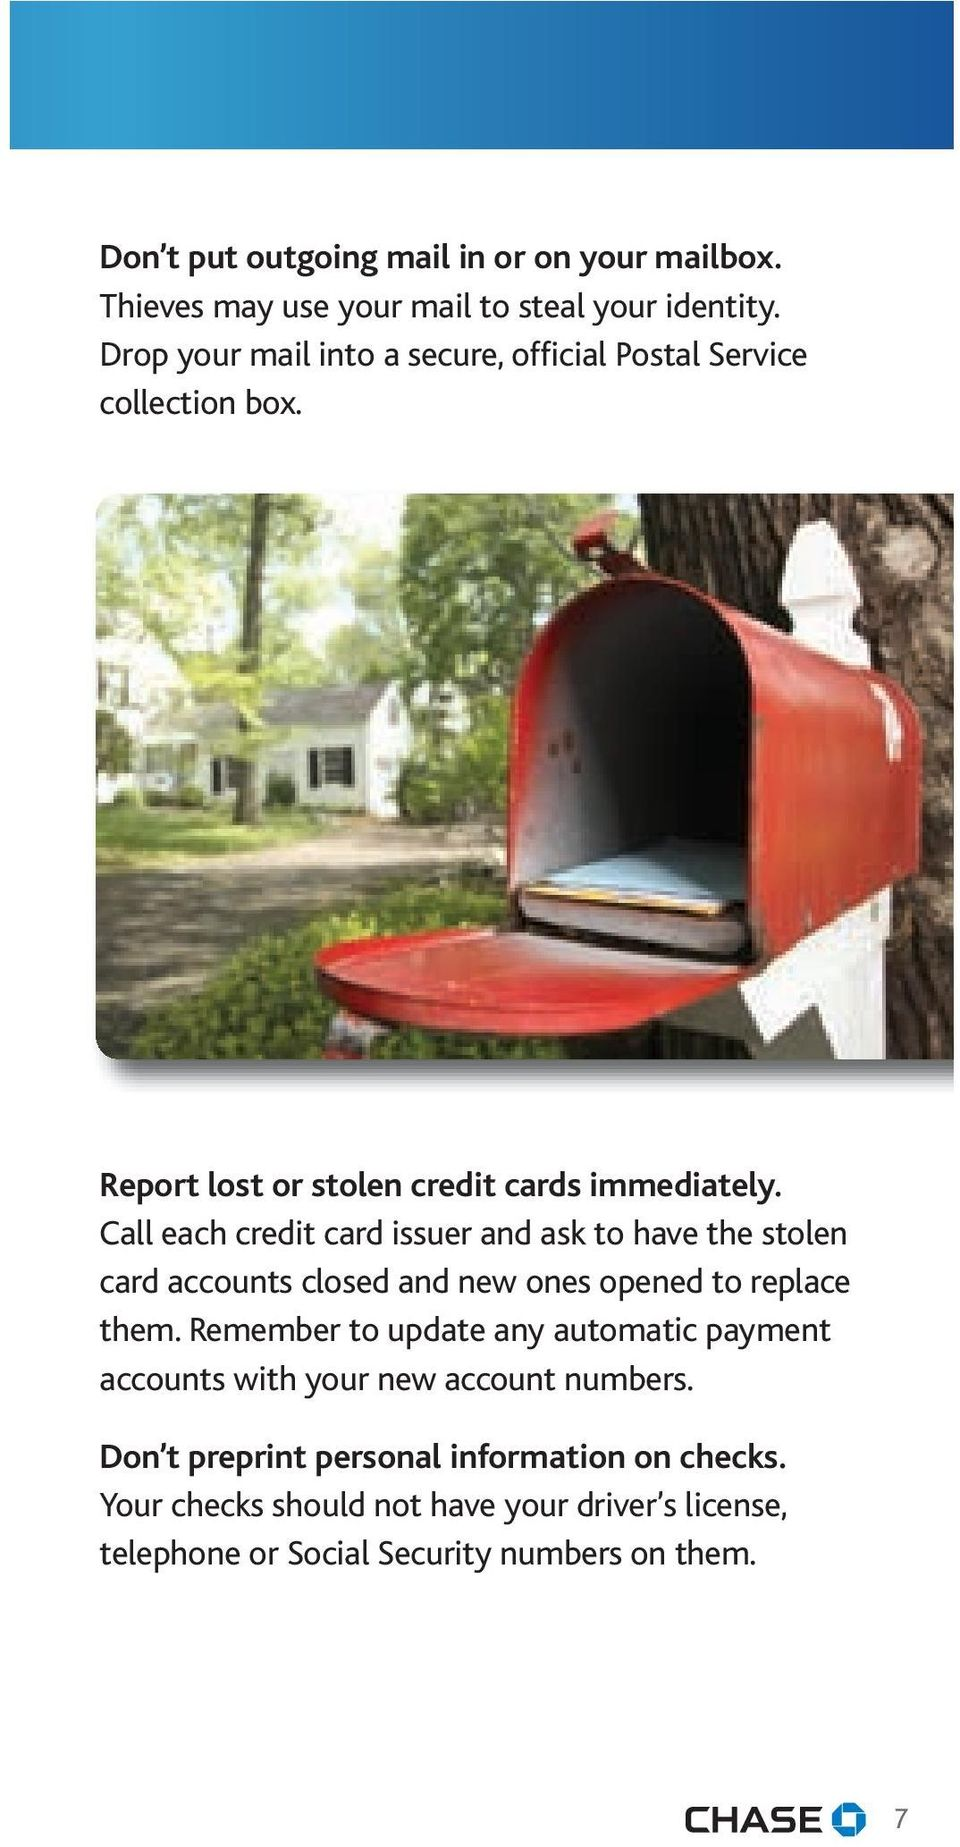 Call each credit card issuer and ask to have the stolen card accounts closed and new ones opened to replace them.